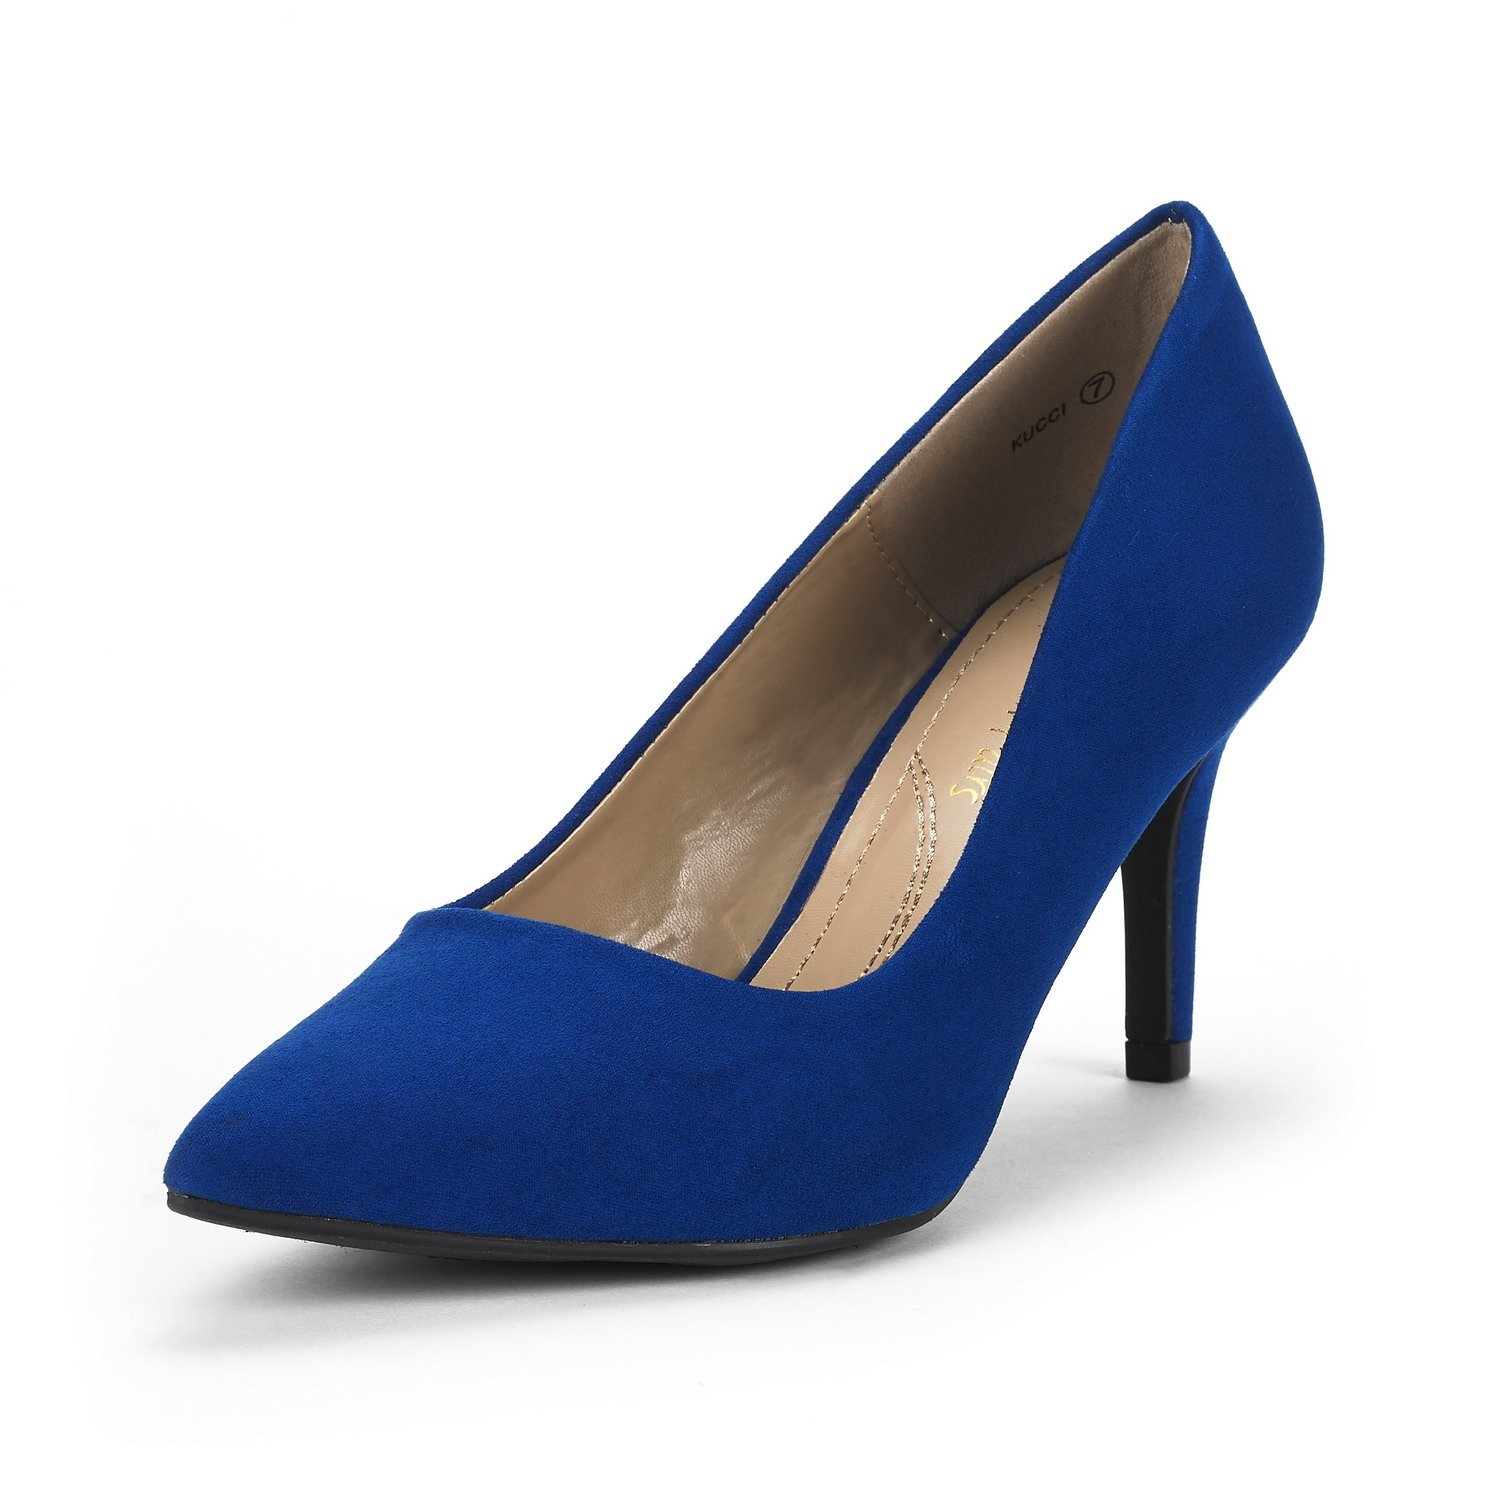 DREAM PAIRS Women's KUCCI Royal Blue Classic Fashion Pointed Toe High Heel Dress Pumps Shoes Size 8 M US